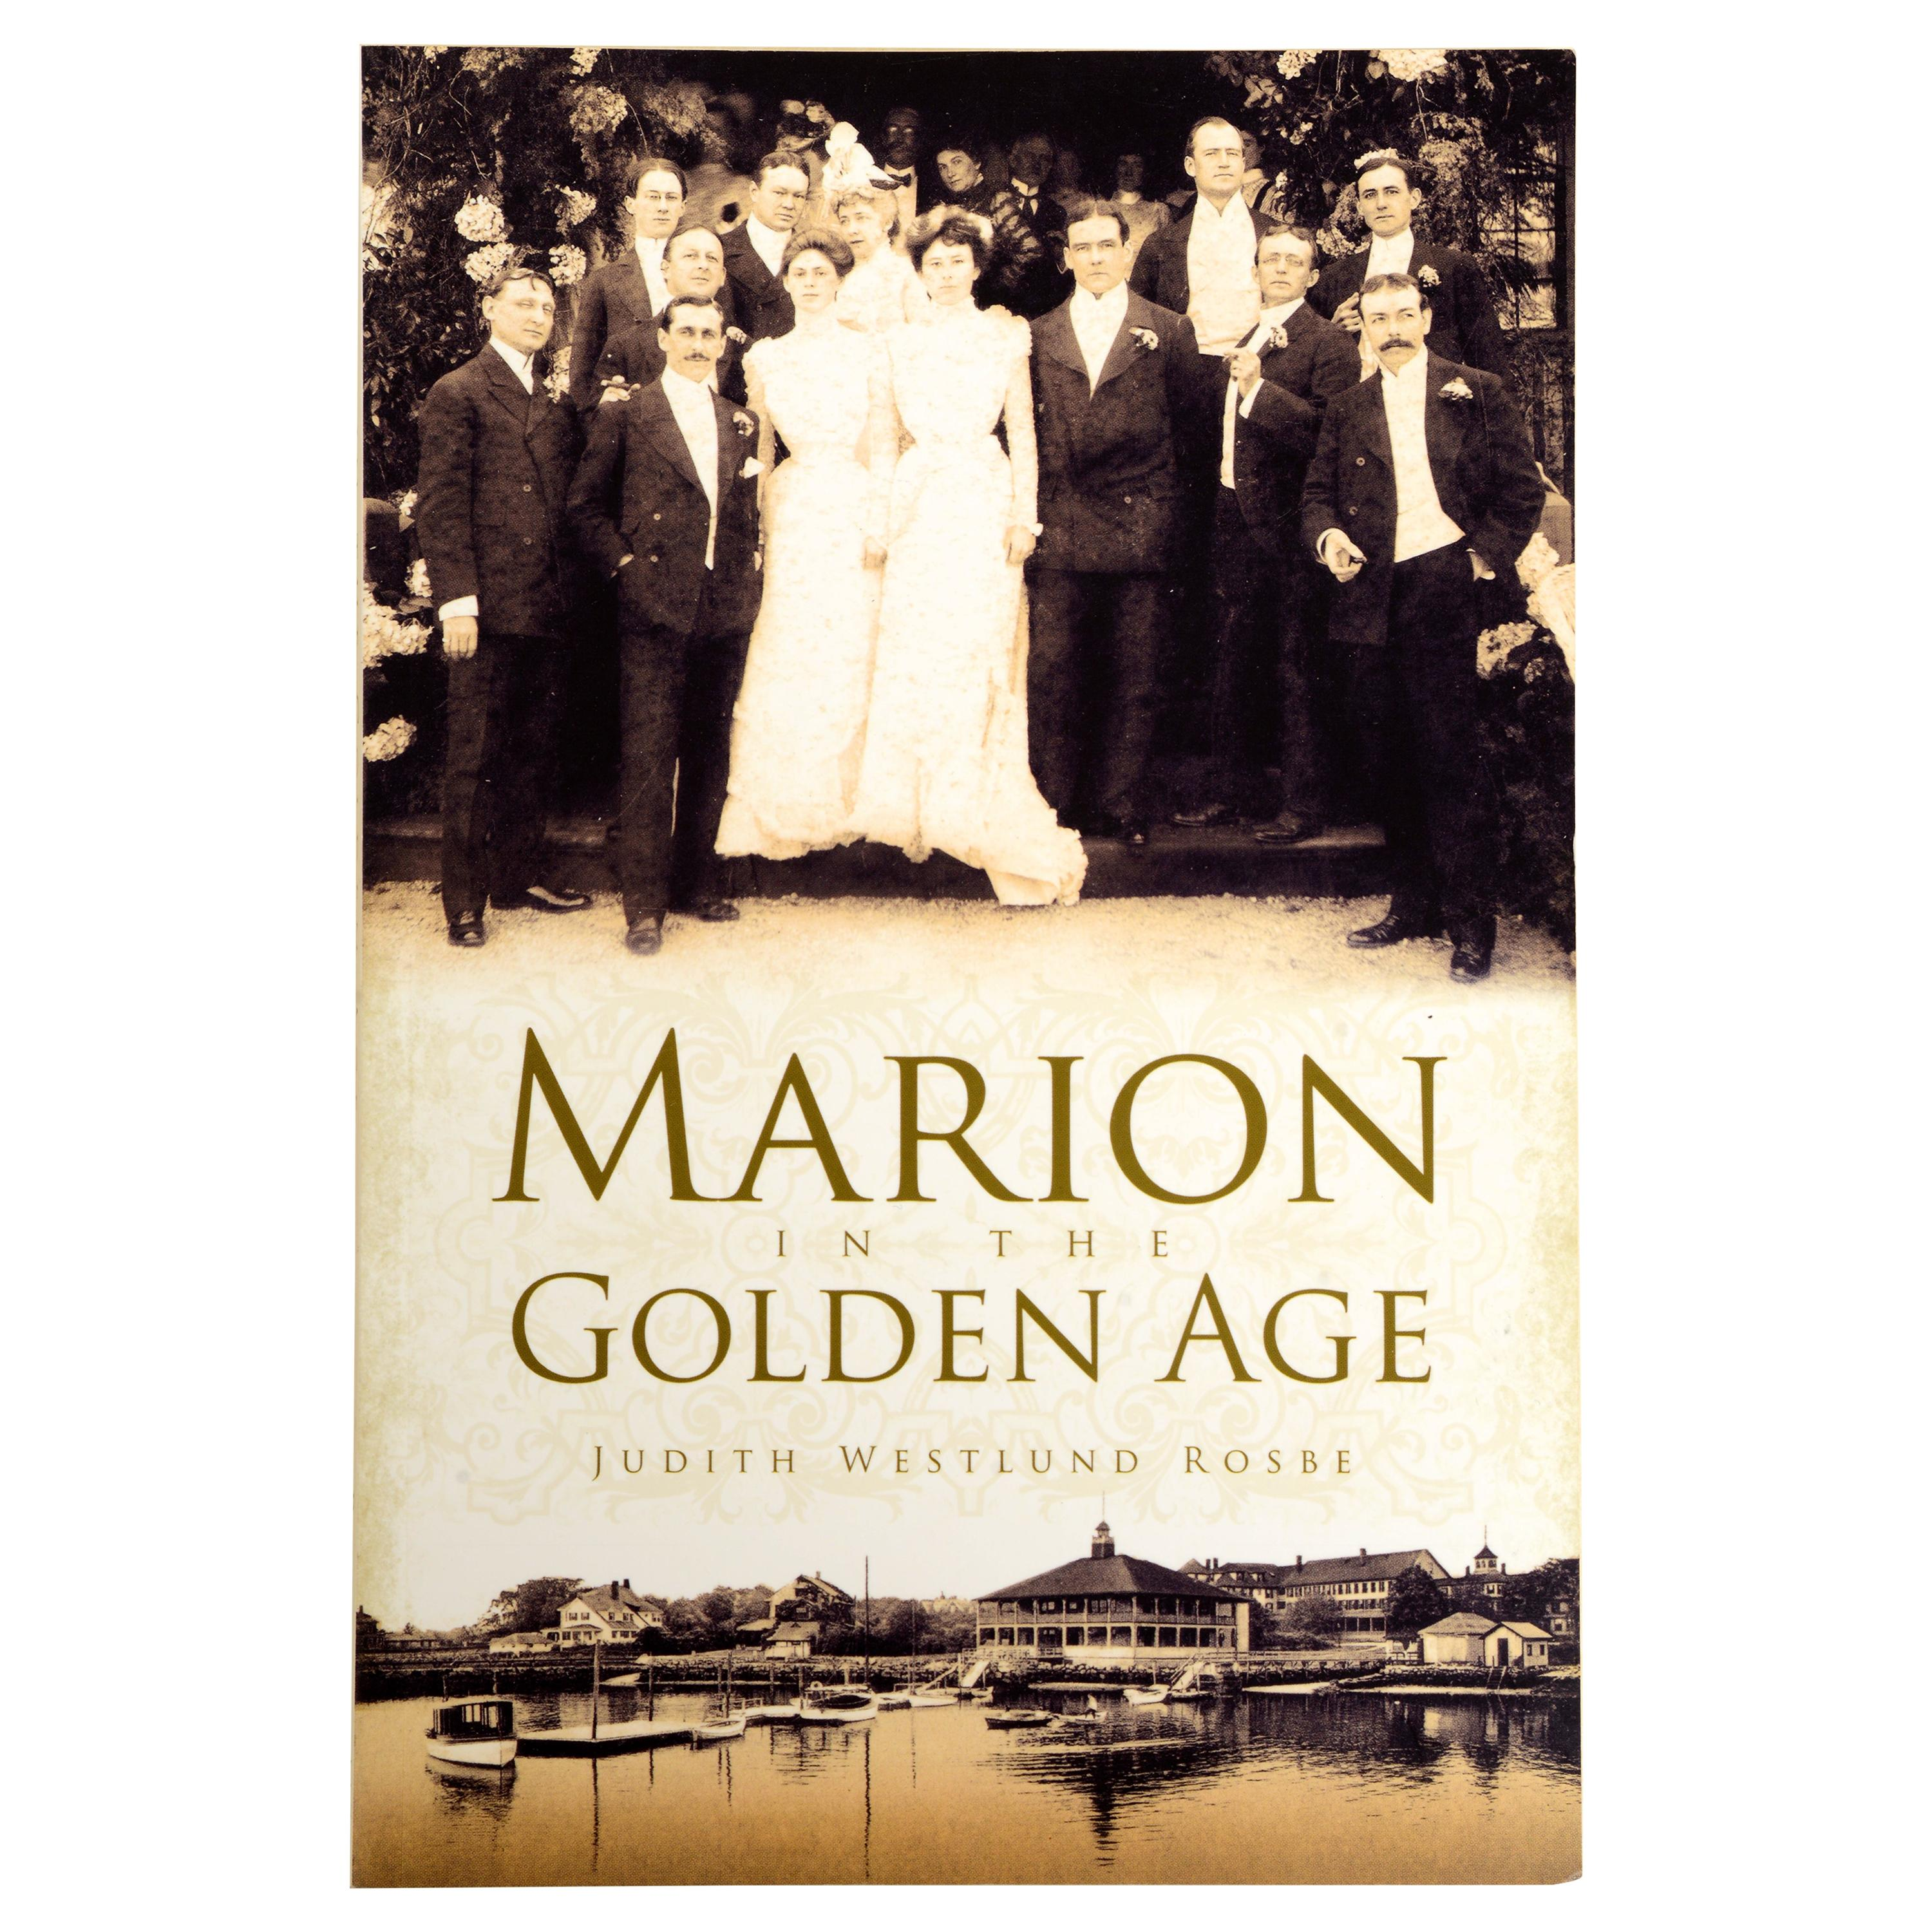 Marion 'Mass' in the Golden Age by Judith Westlund Rosbe, 1st Ed